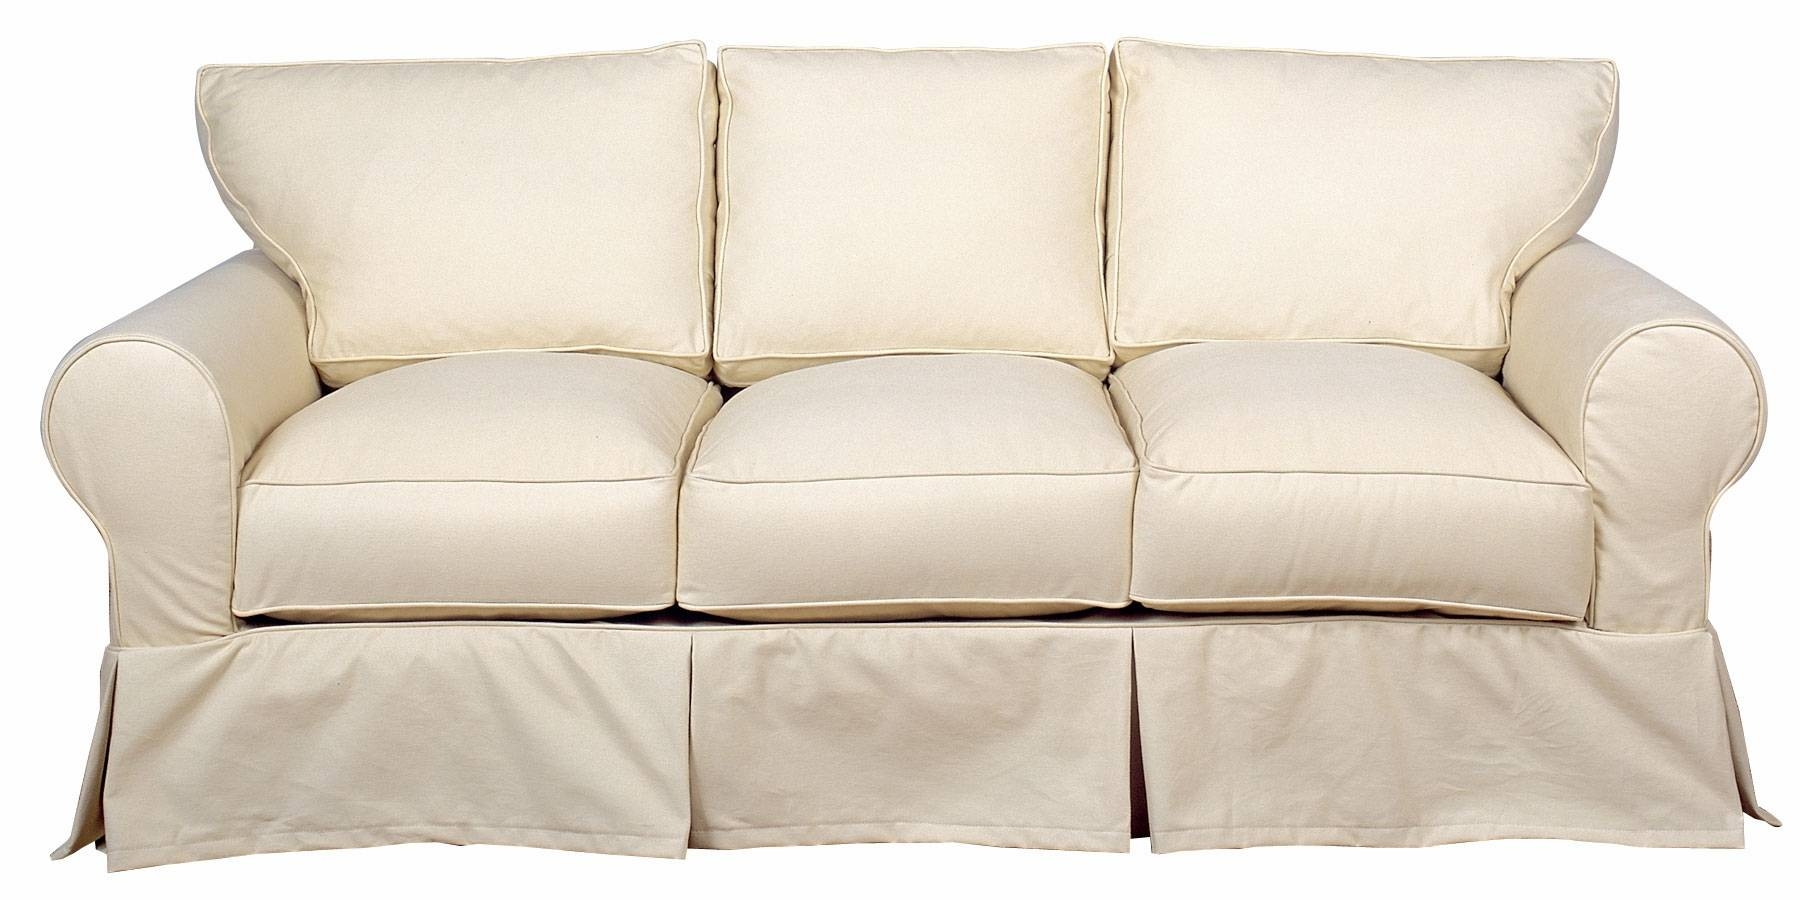 Epic Queen Sleeper Sofa Slipcover 56 On Havertys Sleeper Sofas intended for Sleeper Sofa Slipcovers (Image 4 of 15)